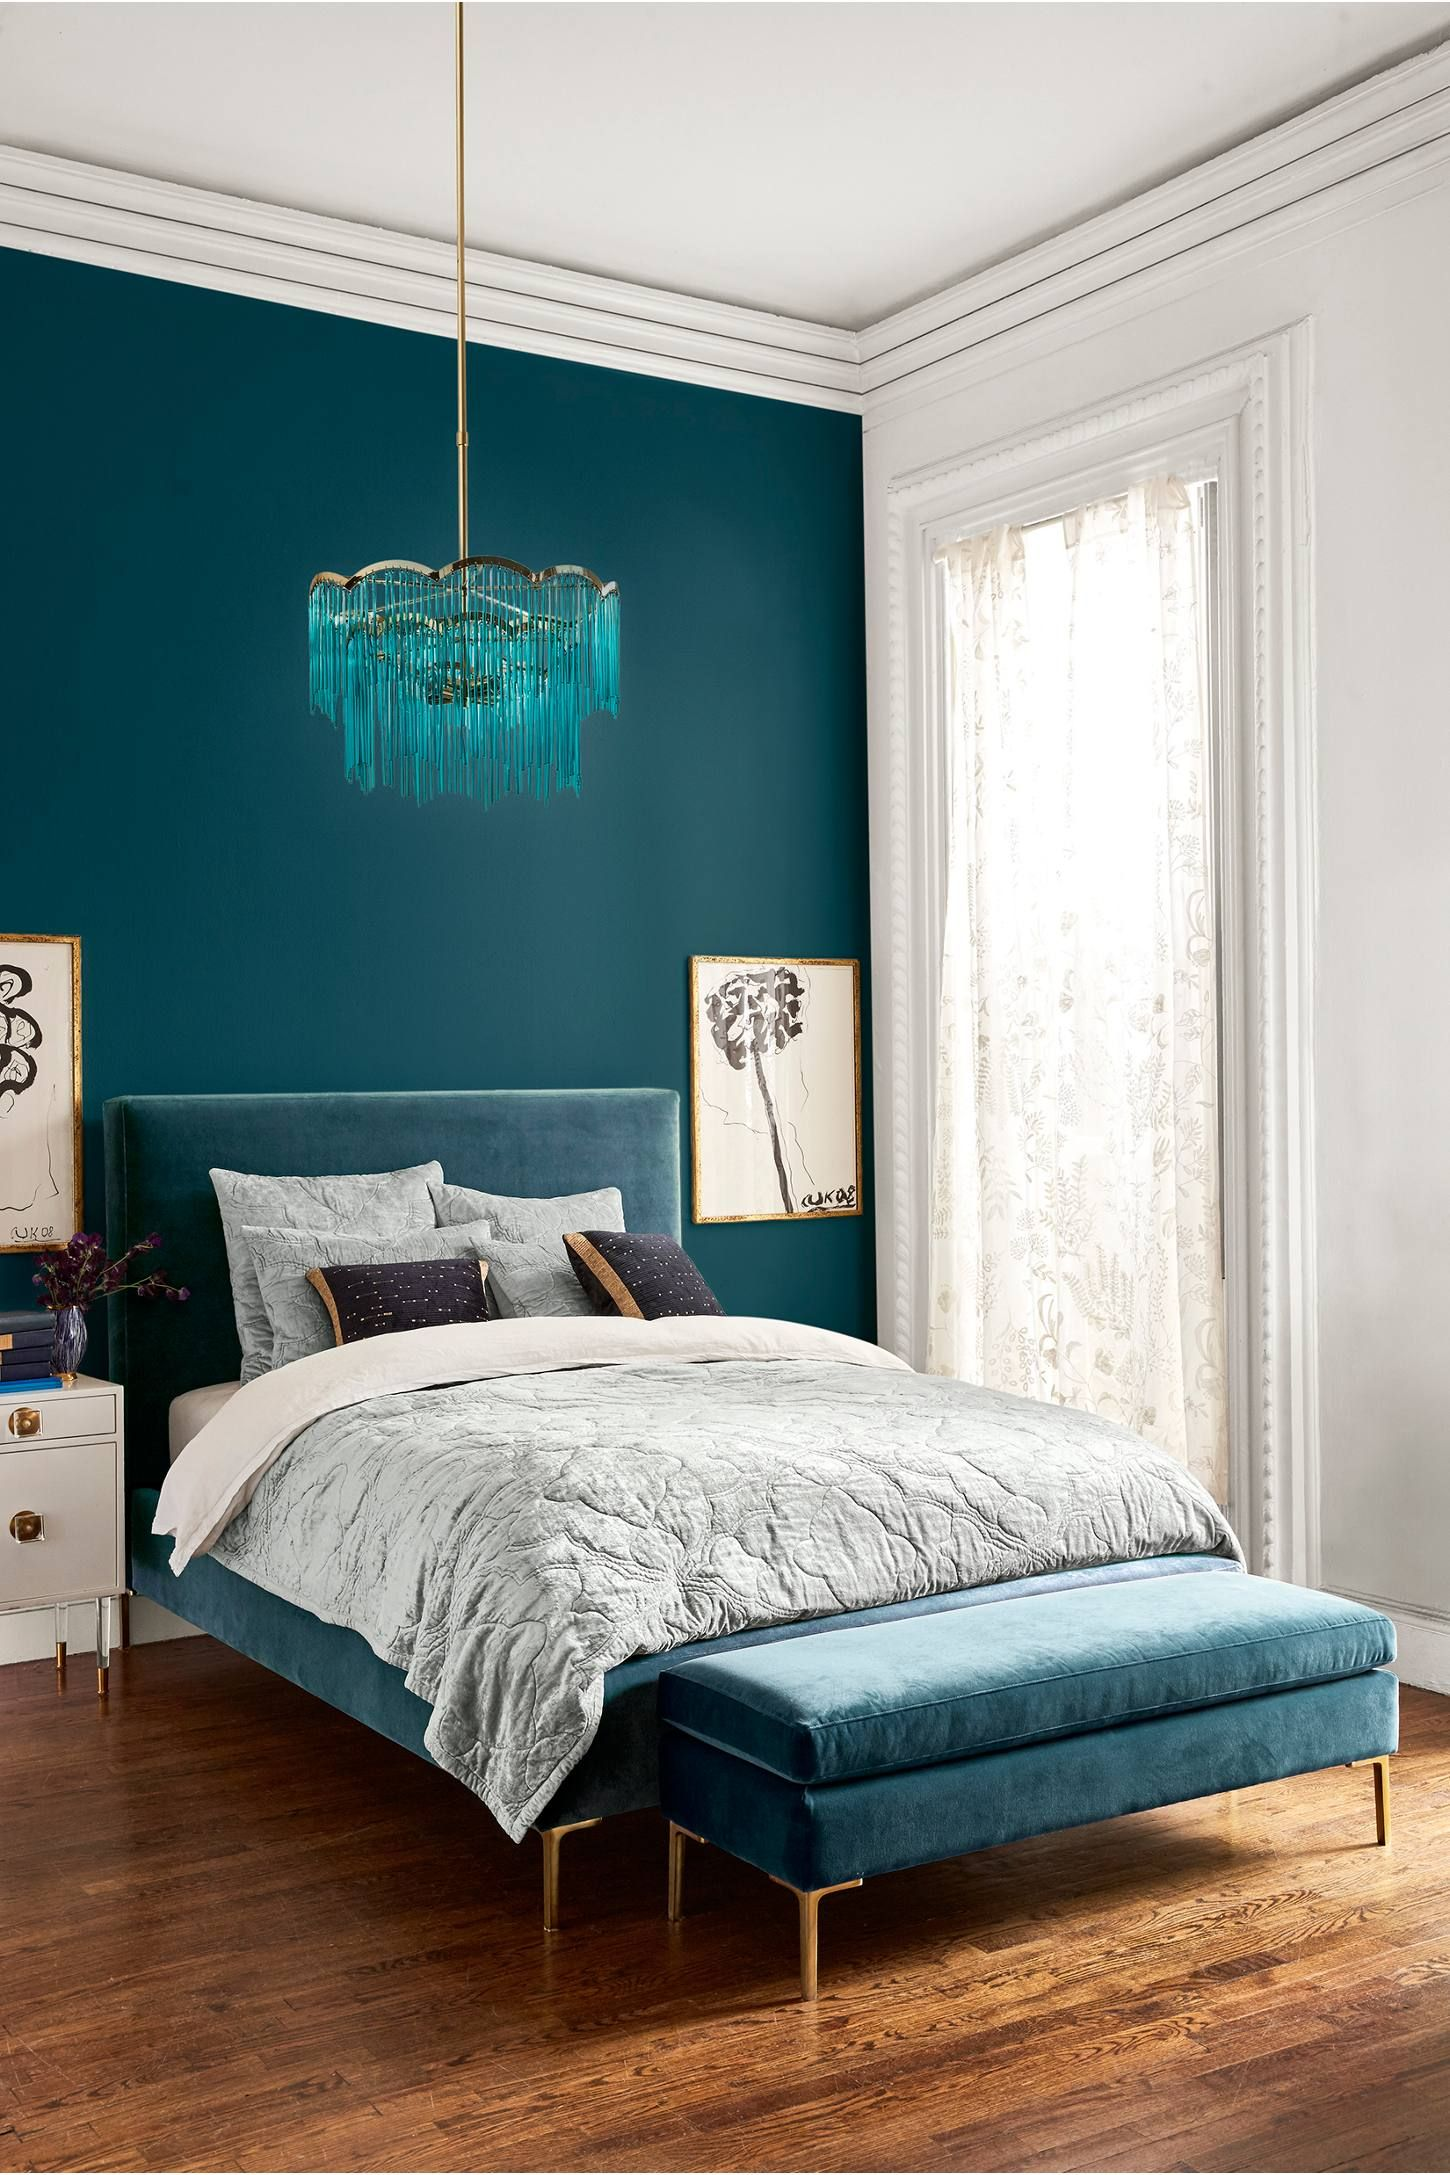 Premium Leather Edlyn Bed | Brass bed, Wall colors and Anthropologie